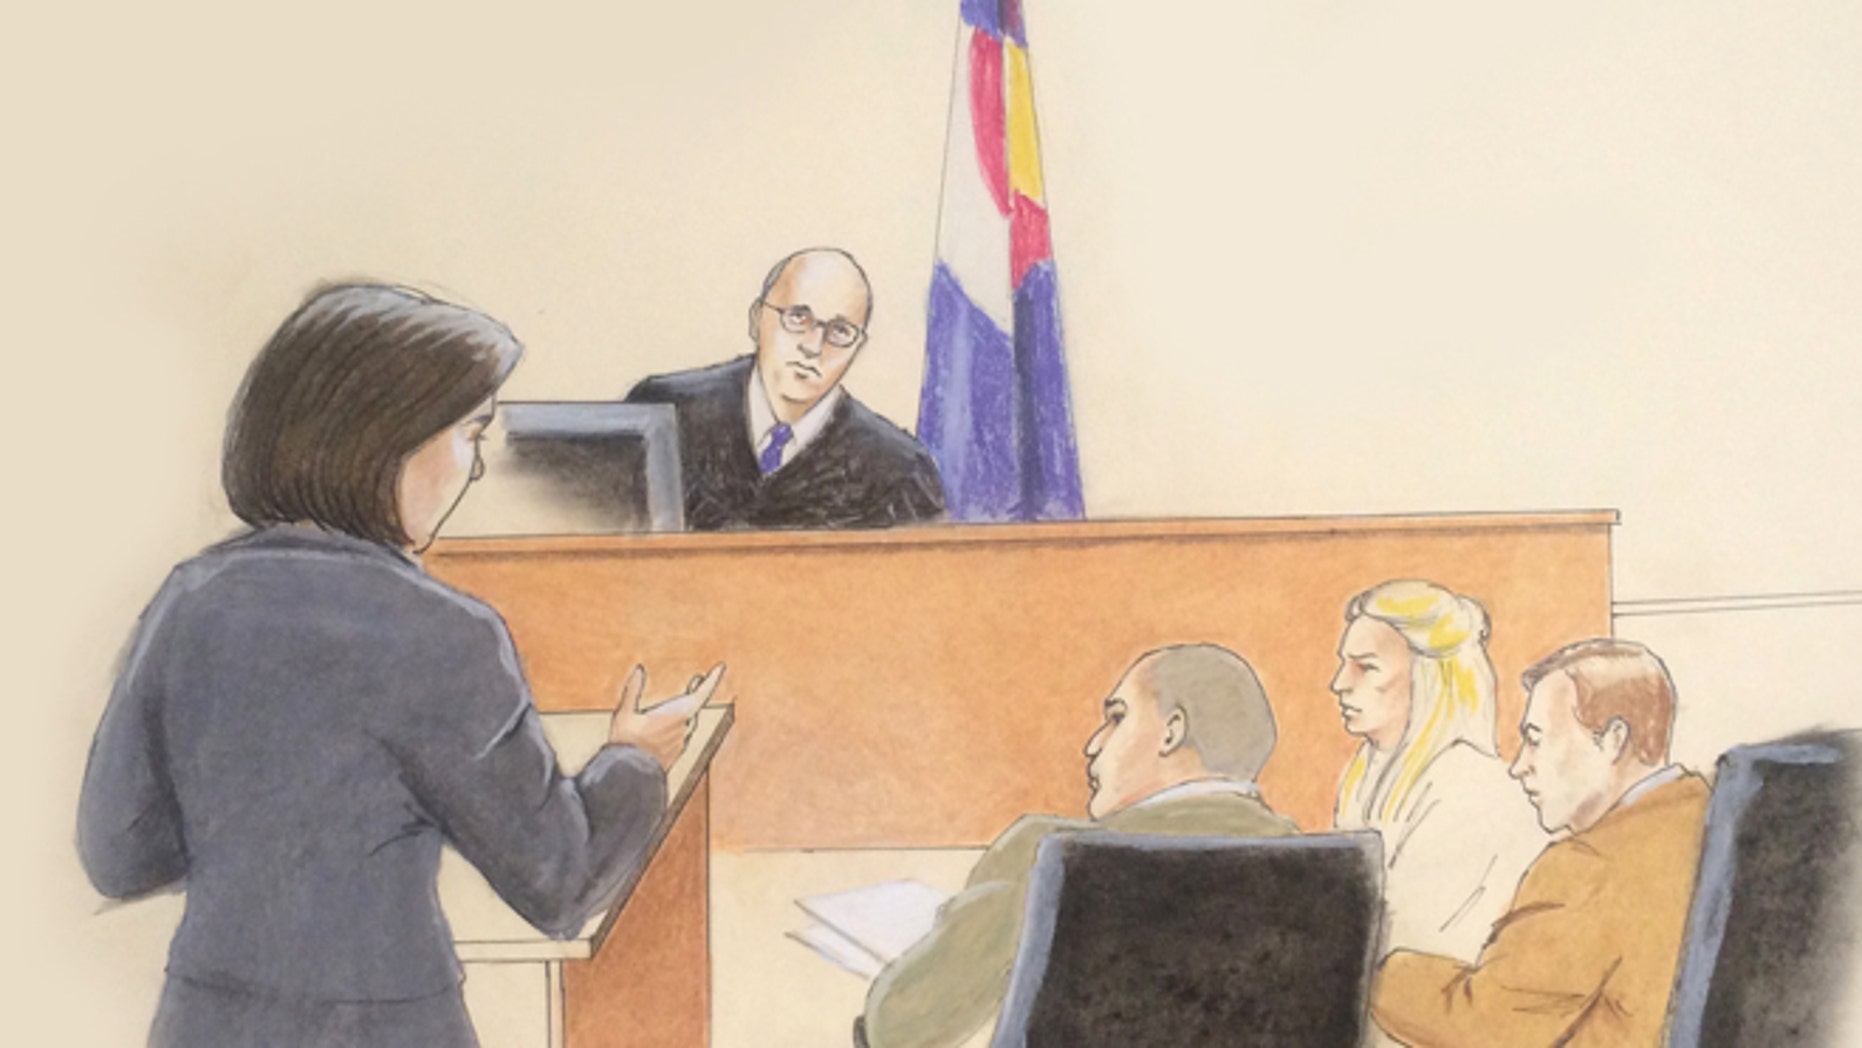 Jan. 20, 2015: In this sketch by courtroom artist Jeff Kandyba, Judge Carlos Samour, center top, is depicted as he faces members of the defense and prosecution teams in court on the first day of jury selection in the trial of Aurora theater shooting defendant James Holmes, at the Arapahoe County Justice Center, in Centennial, Colo. (AP)